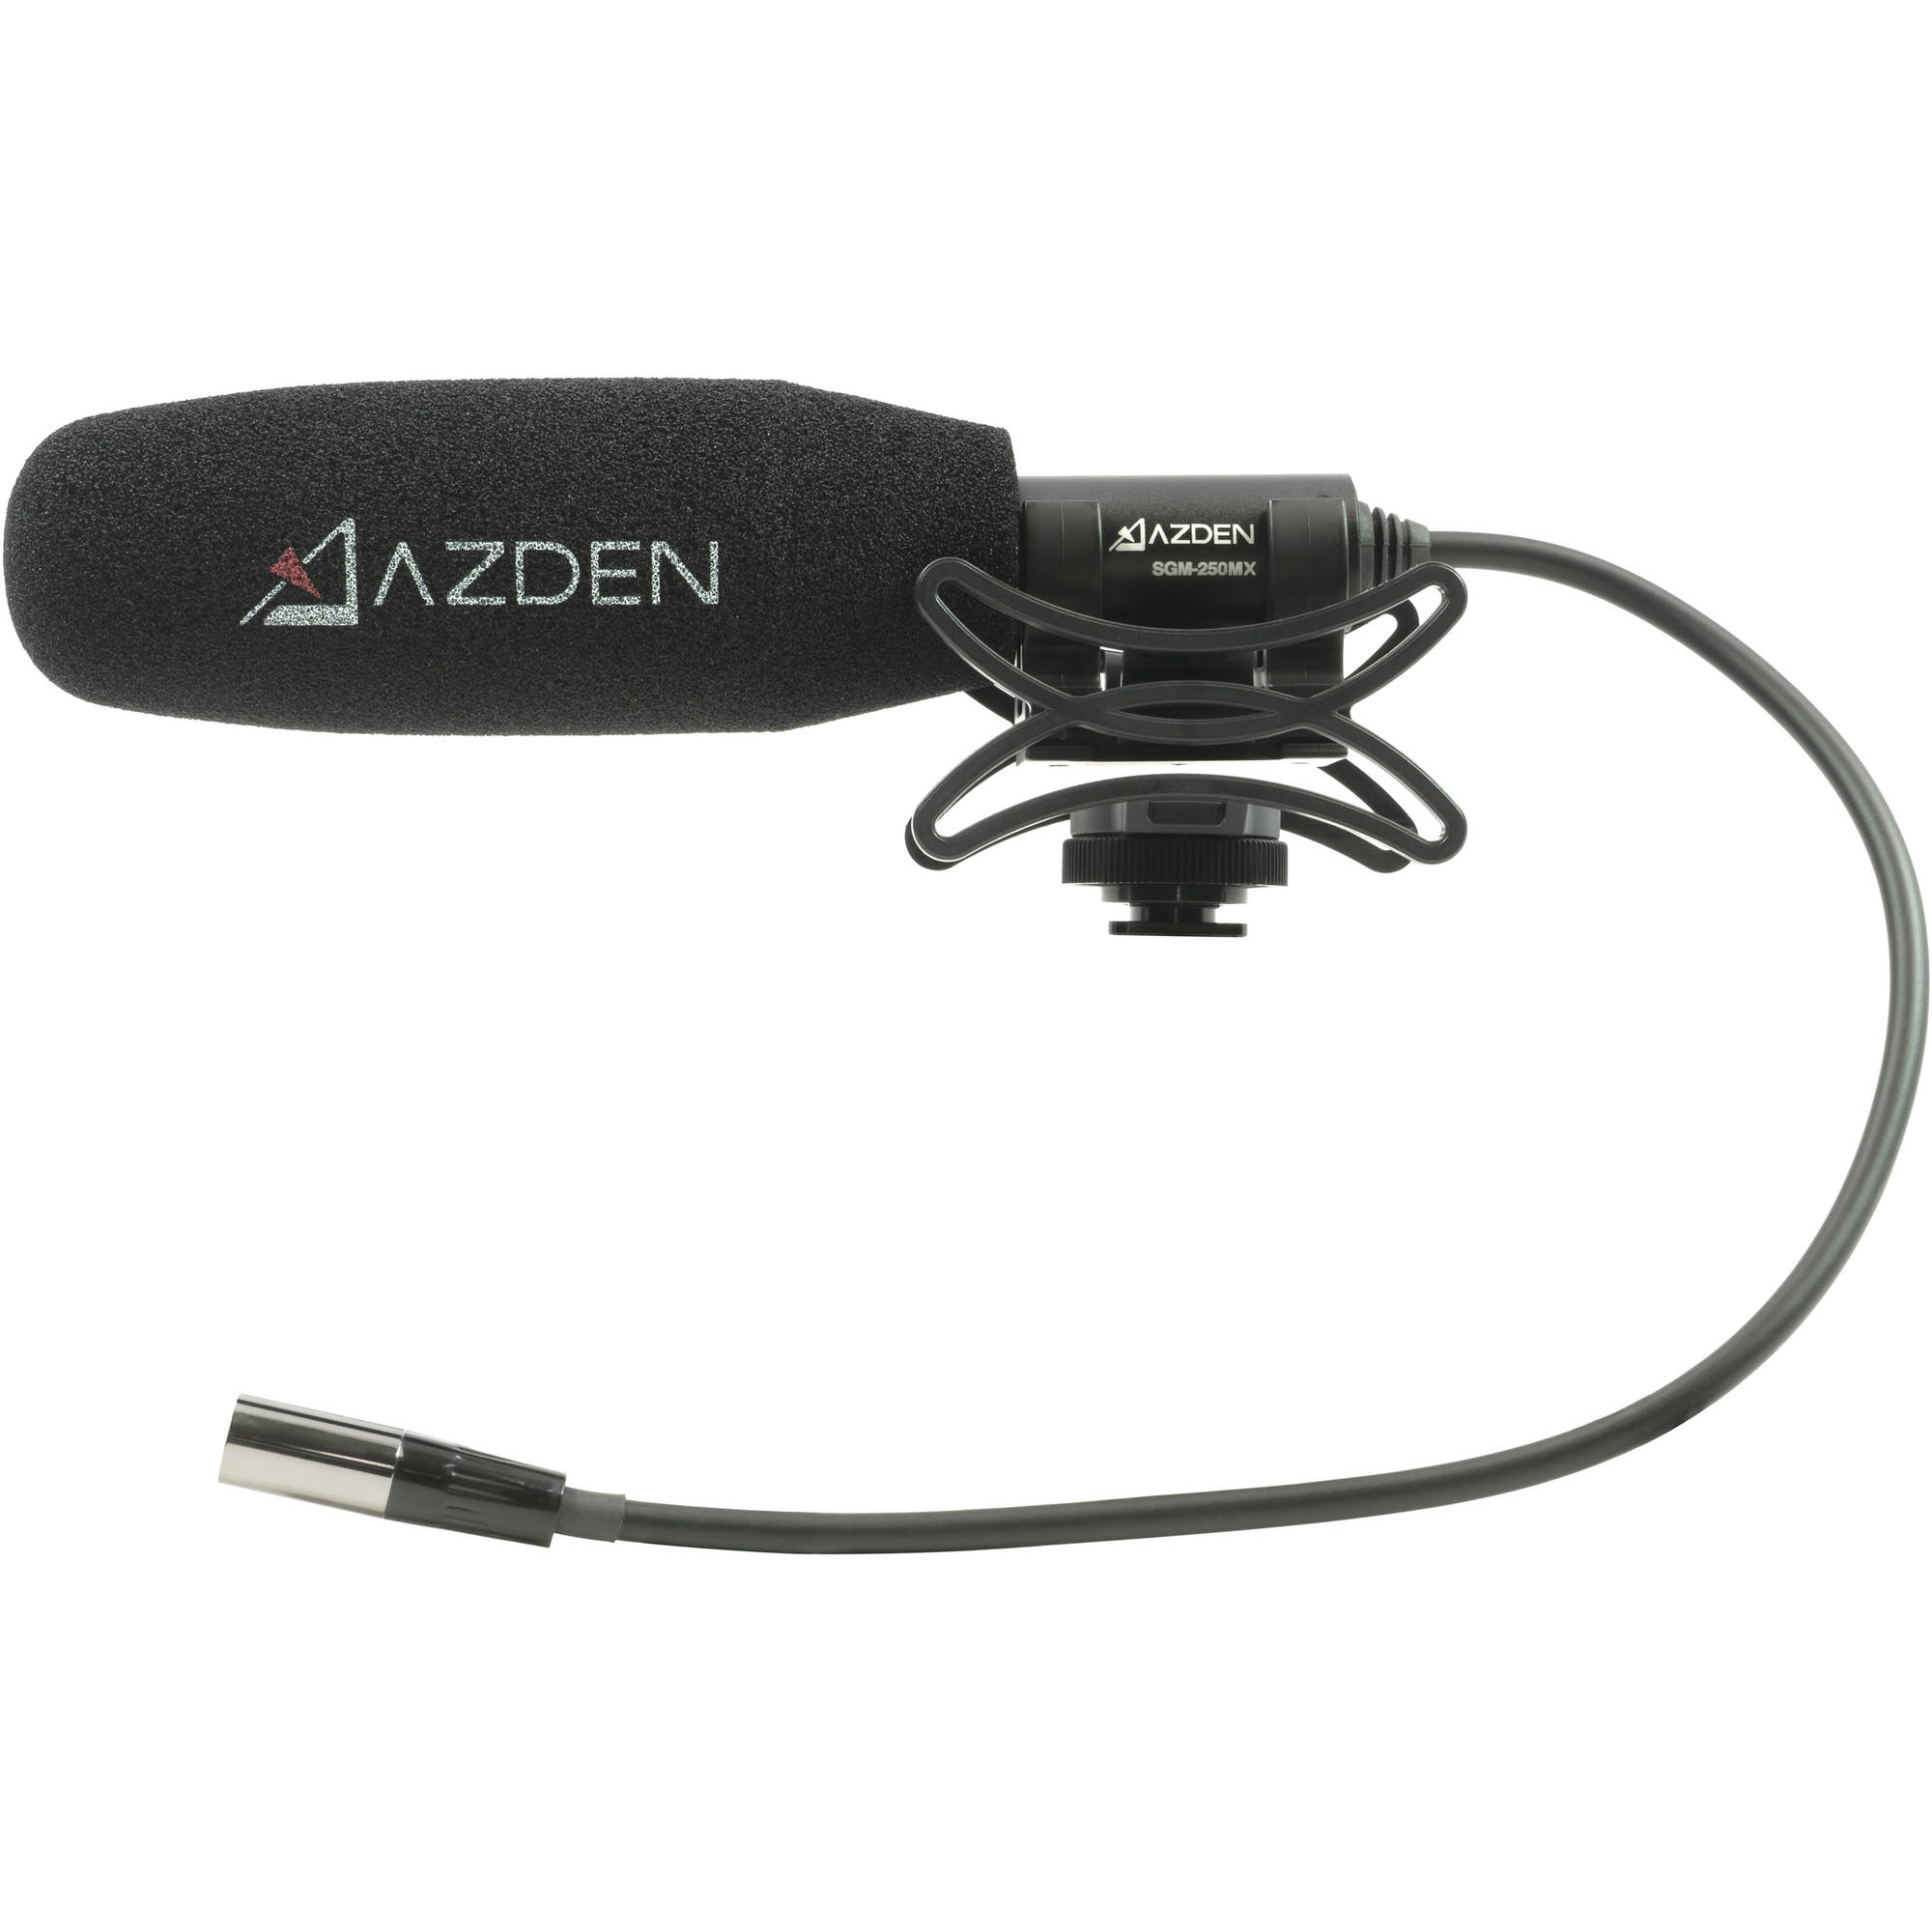 Azden SGM-250MX Compact Shotgun Microphone for Blackmagic Pocket Cinema Camera 4K / 6K